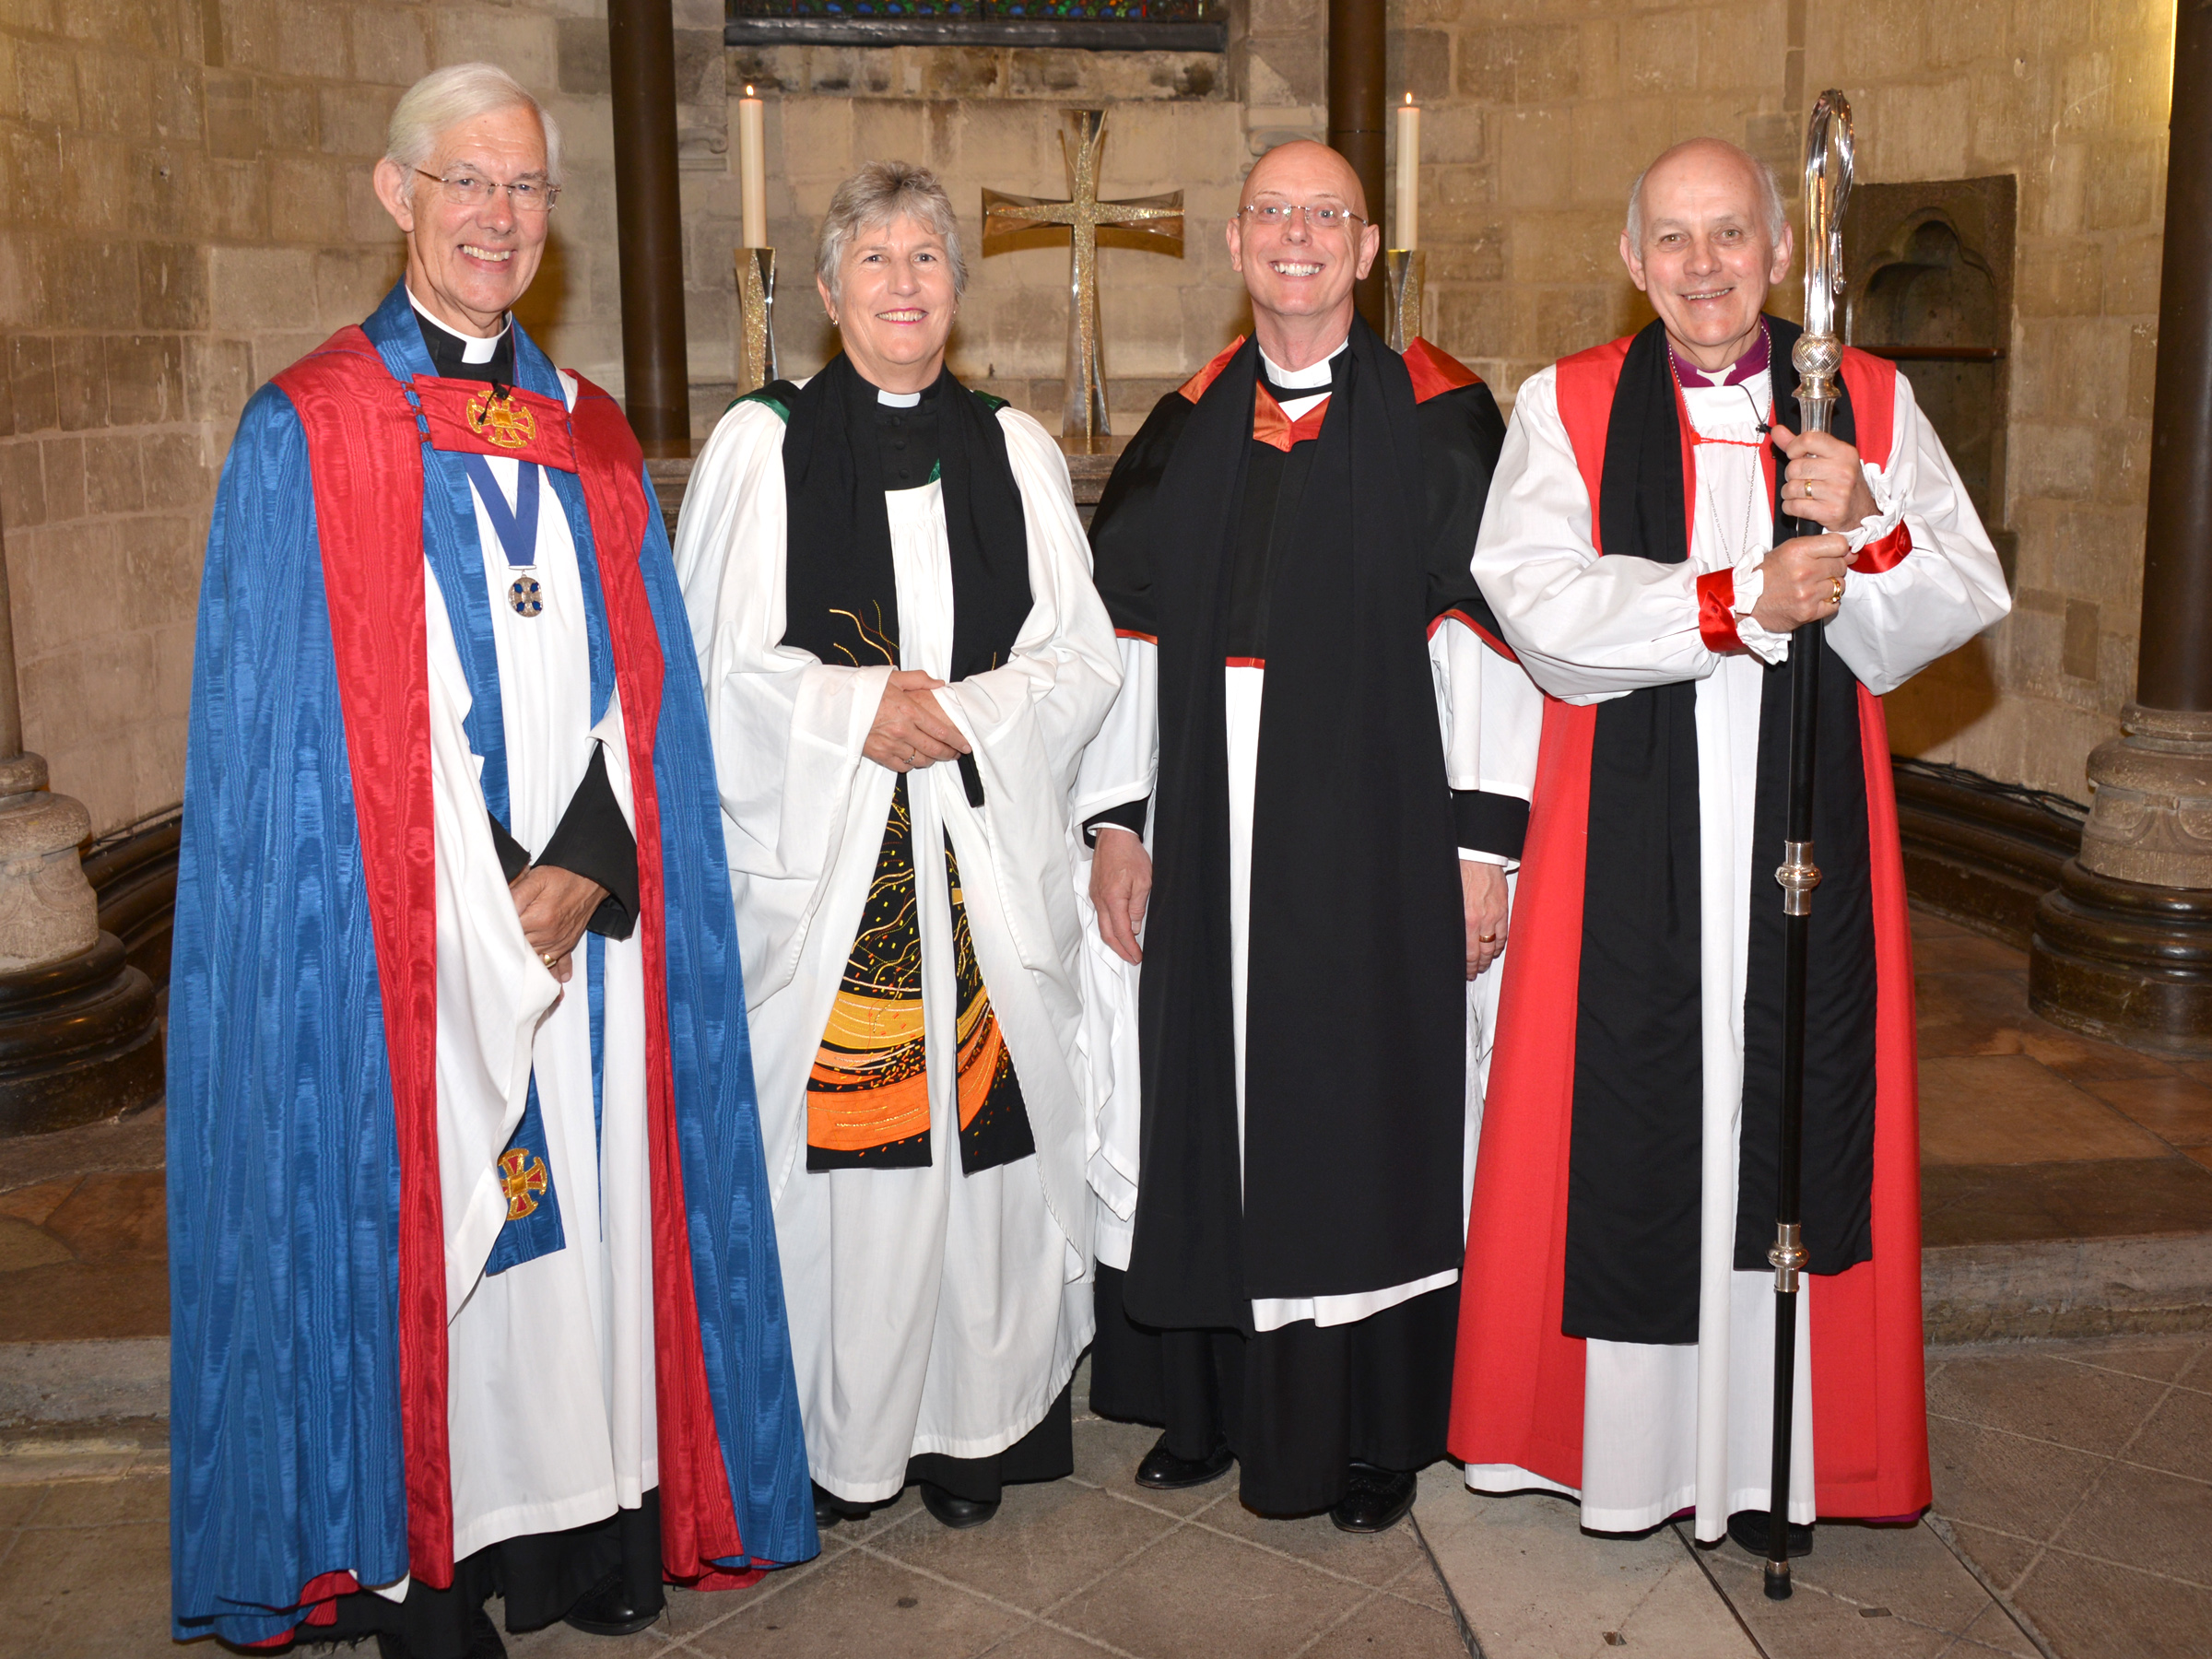 Two new Honorary Canons Installed at Canterbury Cathedral